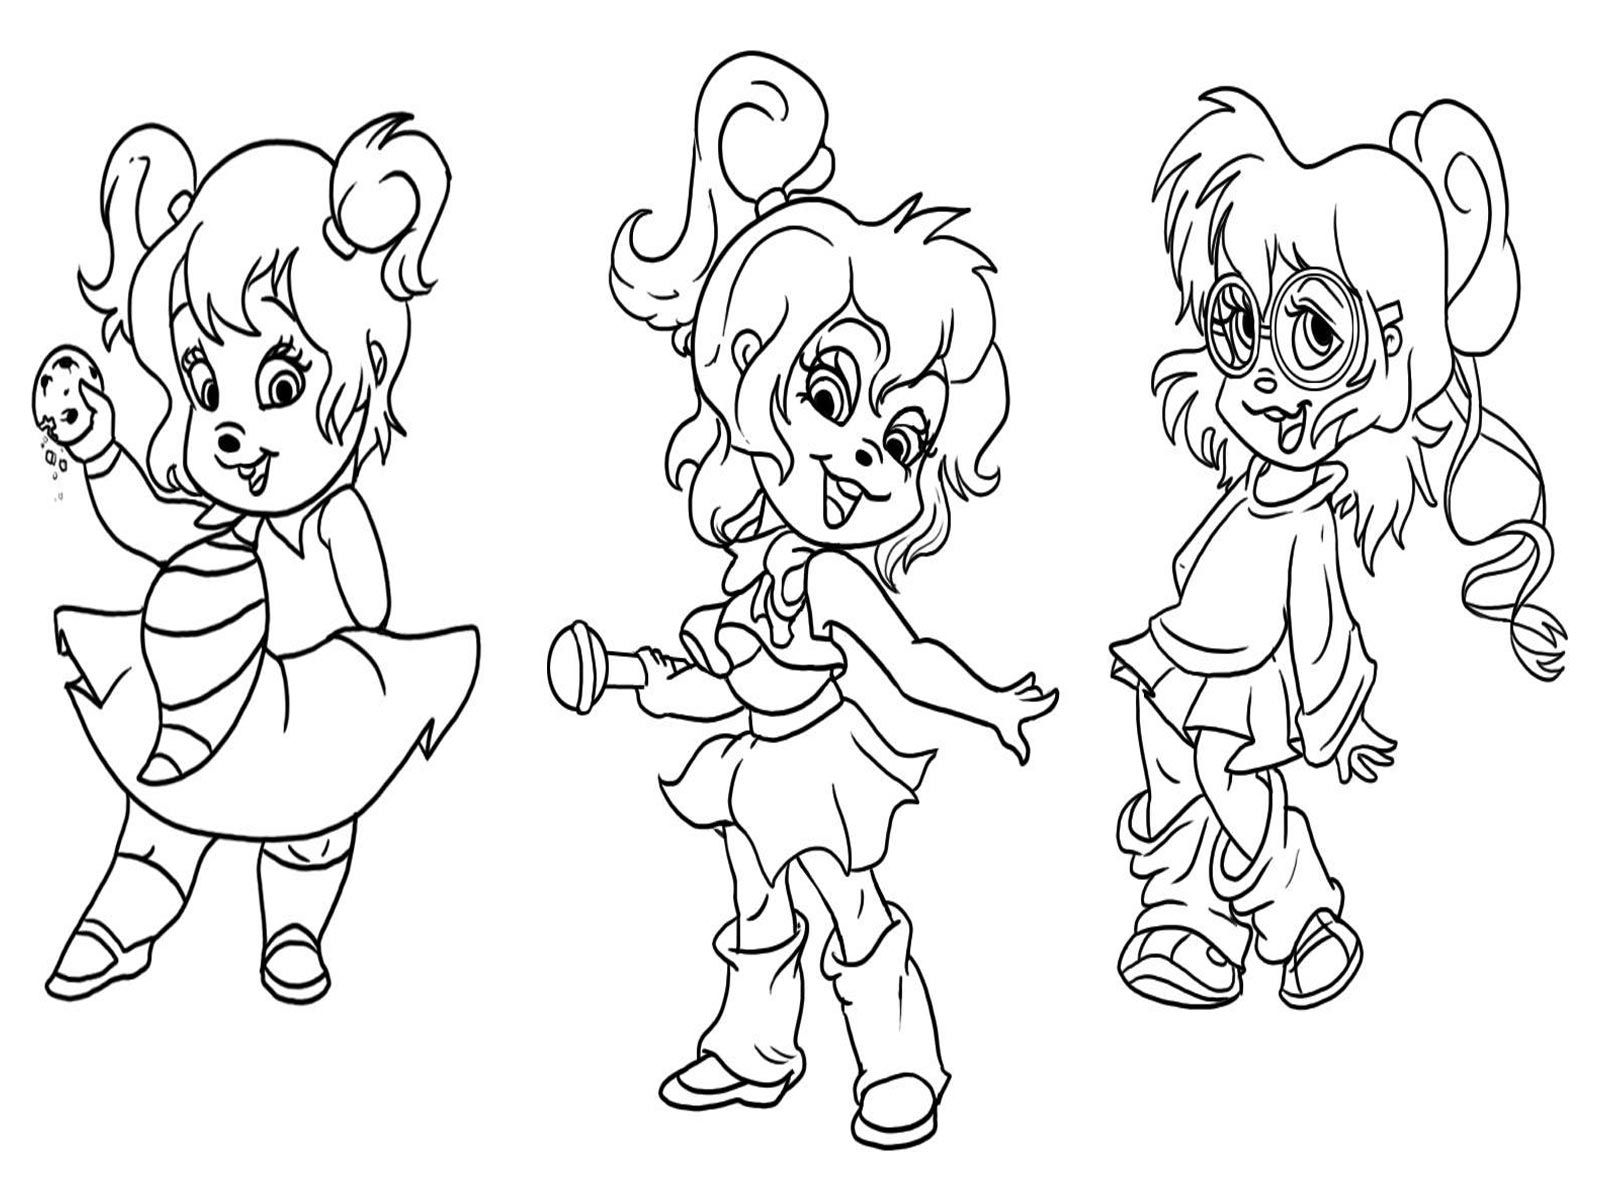 Alvin And The Chipmunks Dancing Disney coloring pages